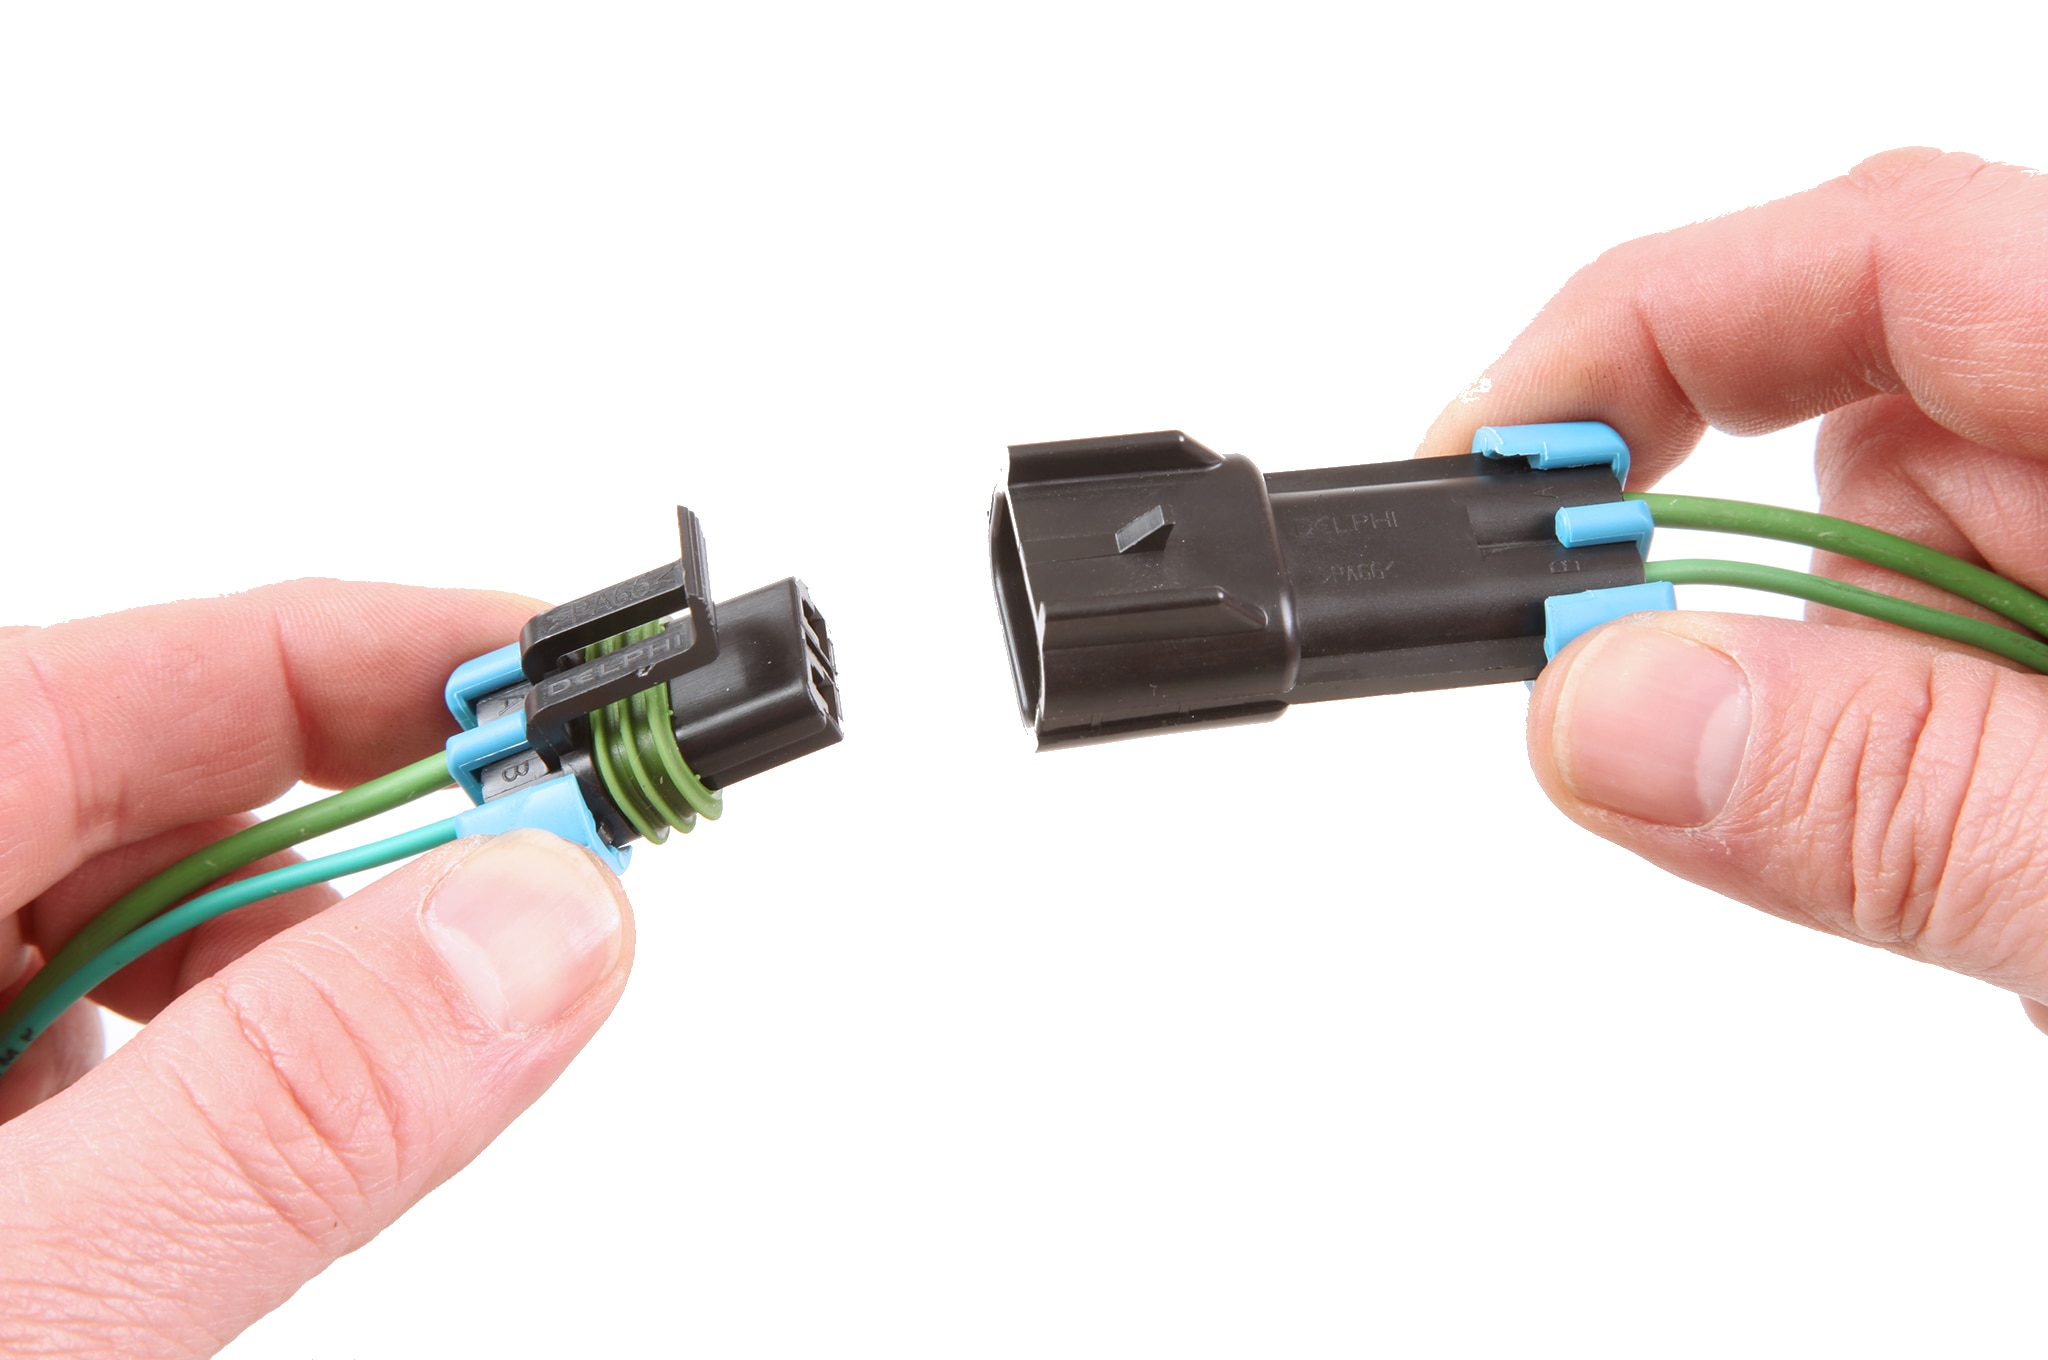 gm wiring harness connectors 1 wiring diagram sourcegm wiring harness connector locking wiring diagrams fjgm wiring harness connector locking everything wiring diagram gm